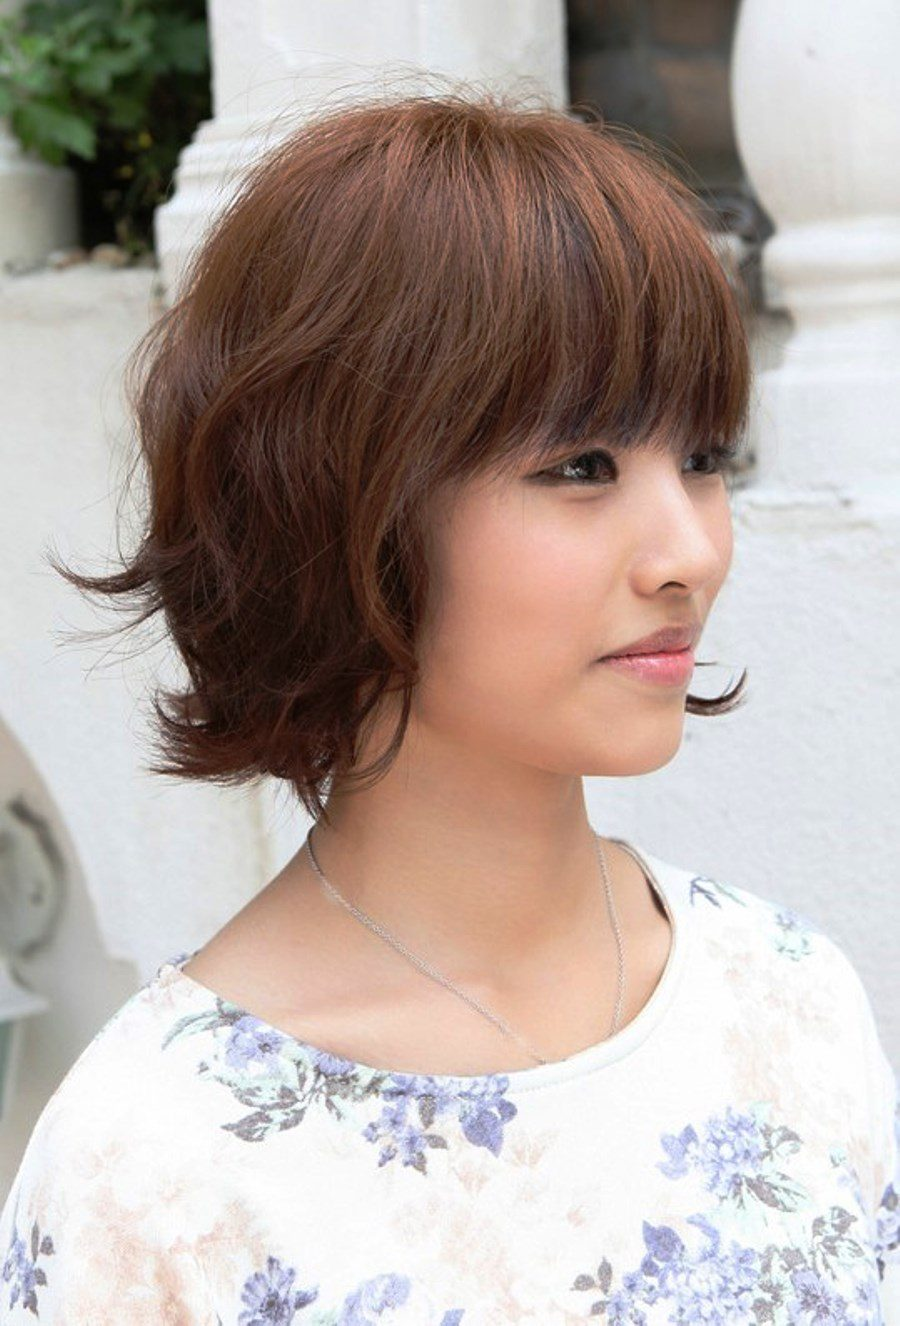 Fabulous Short Layered Bob Hairstyle with Bangs 900 x 1326 · 173 kB · jpeg